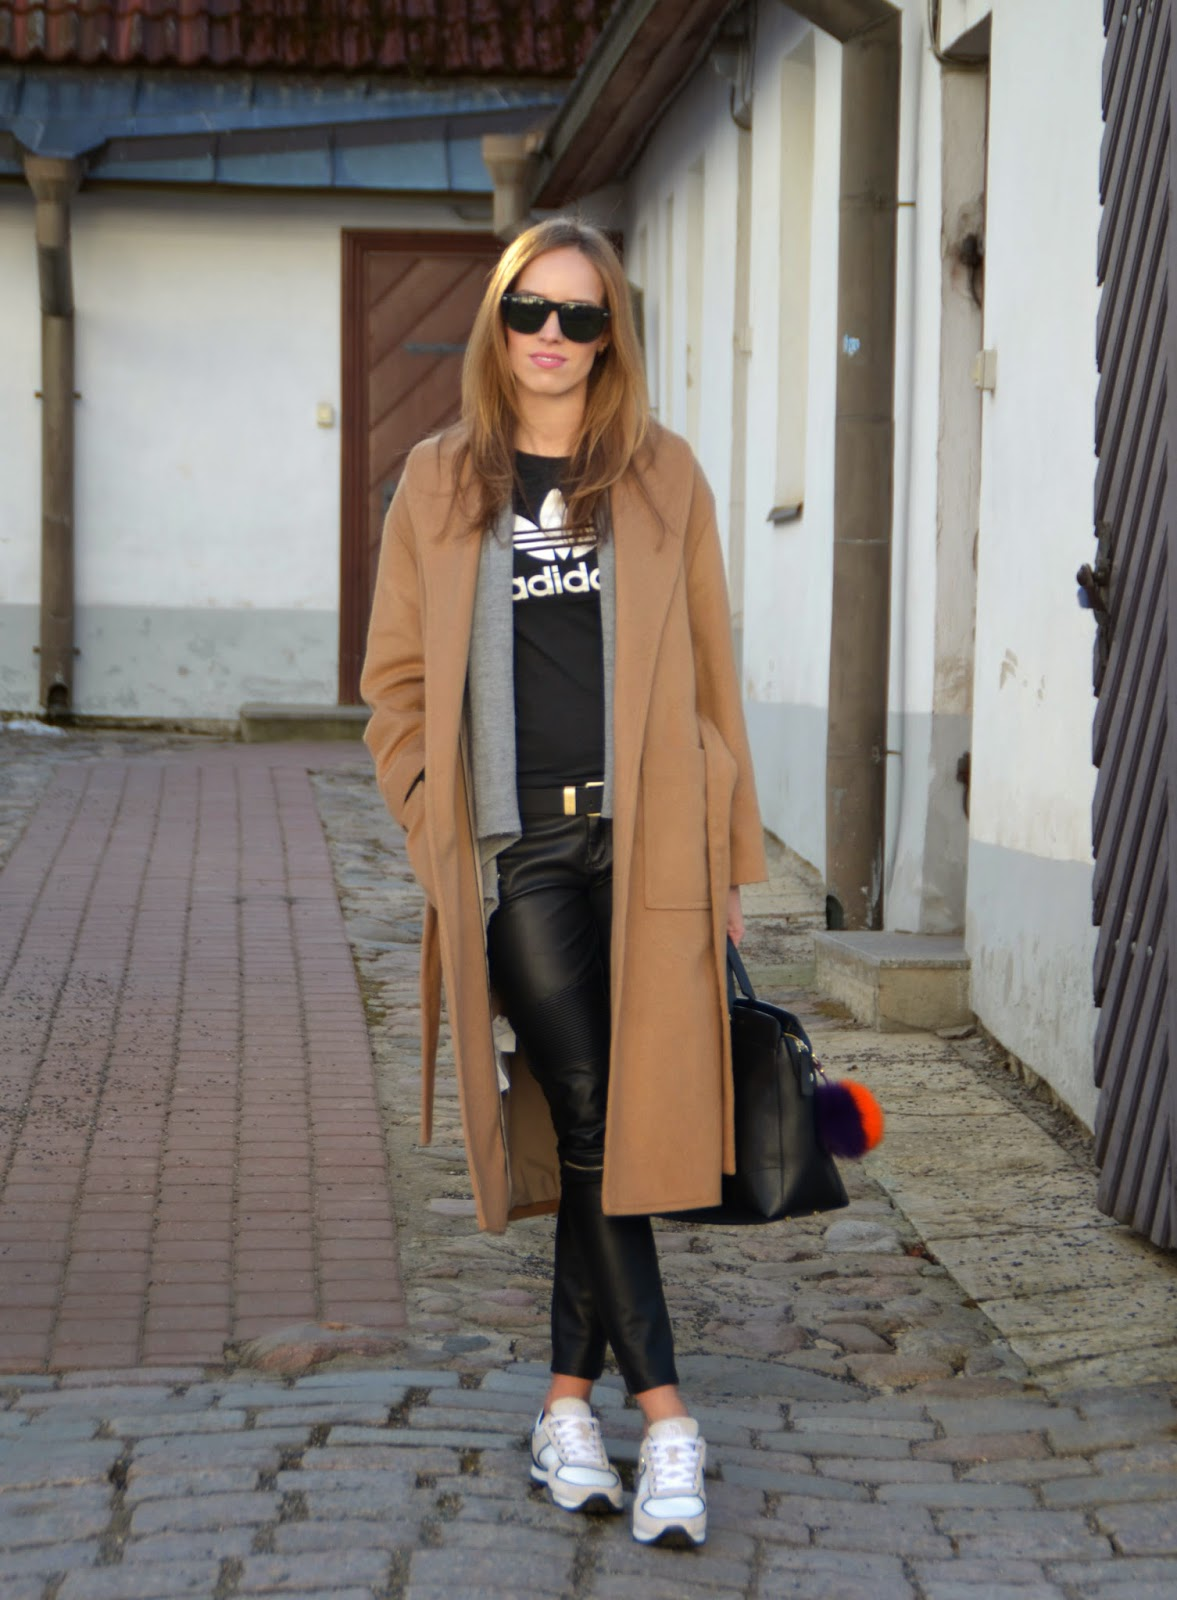 winer-outfit-camel-coat-leather-pants-adidas-tshirt